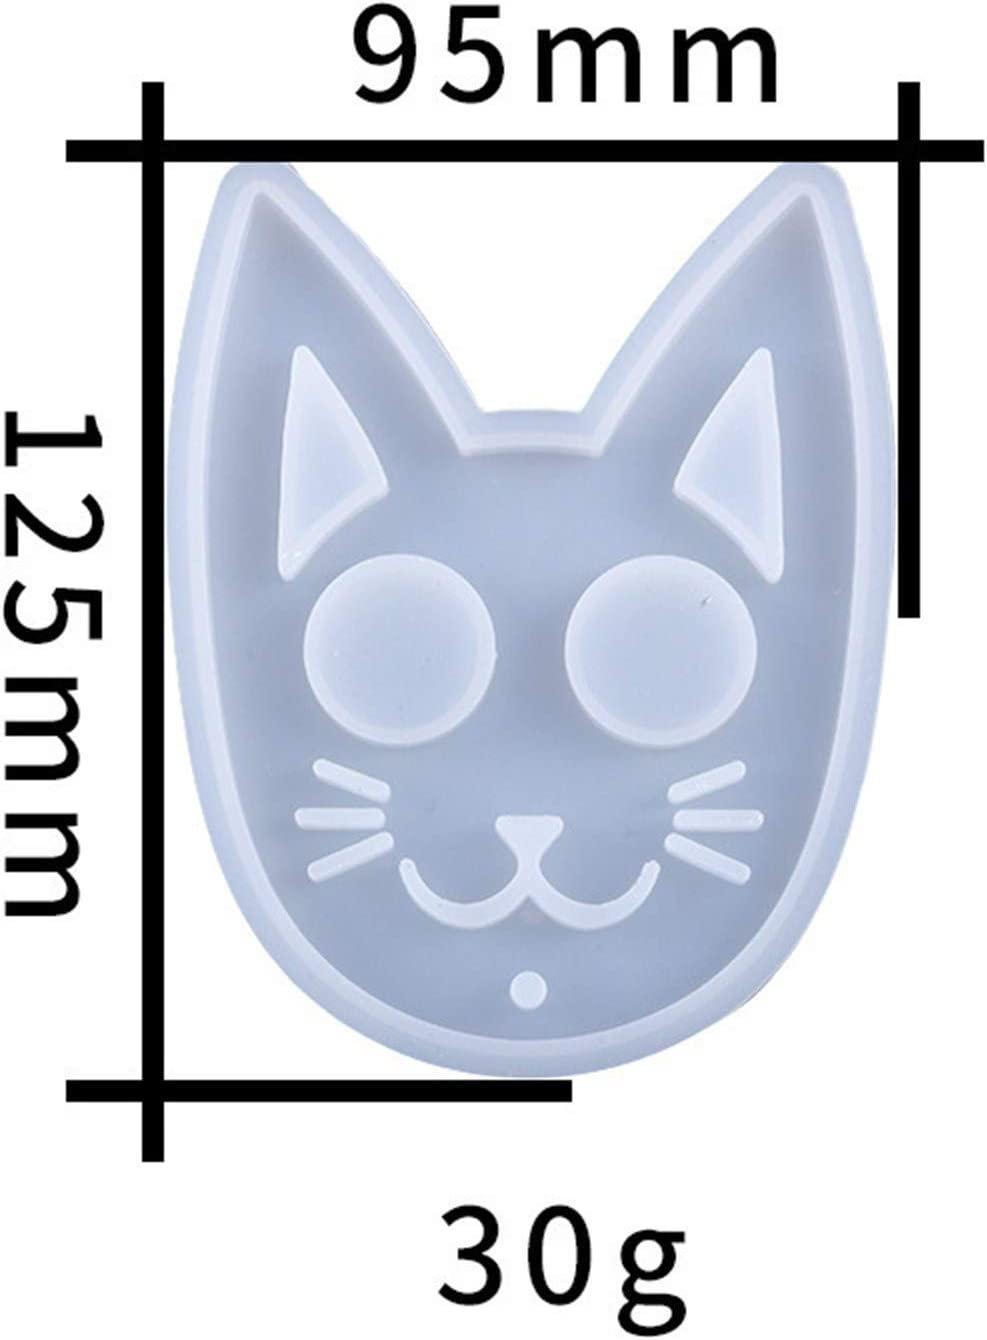 2020NEW Shiny Glossy Cat Keychain Mold,S-e-lf-D-e-fense Cat Keychain Mold,DIY Handmade Charms,Crystal Epoxy Resin Mold,Jewellery Casting Silicone Molds,Polymer Clay Crafts Making Tools Fashion white